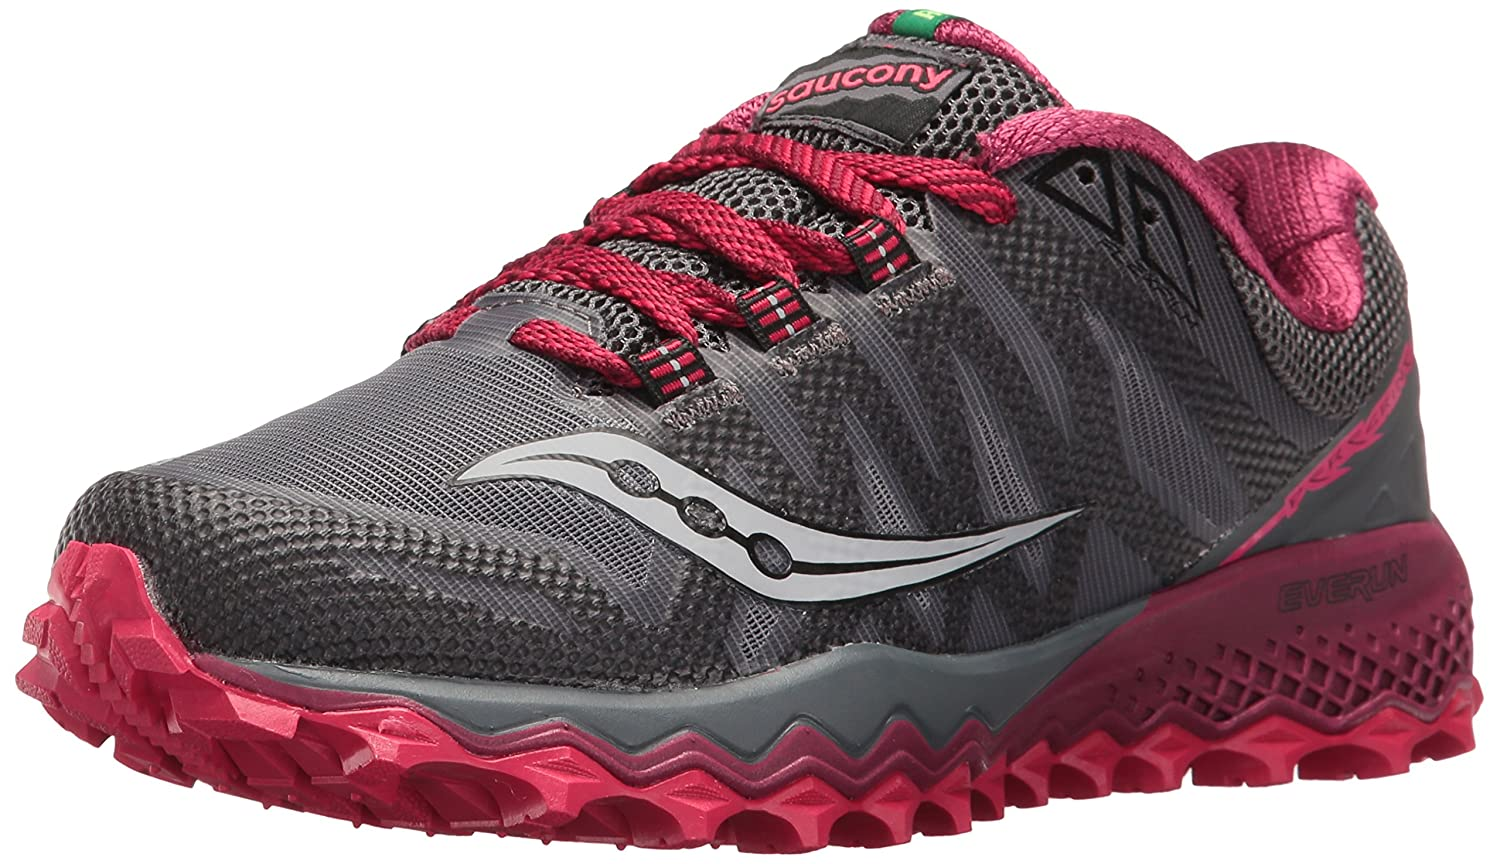 Saucony Women's Peregrine 7 Trail Running Shoe B01GJYDGQK 6 B(M) US|Grey Berry